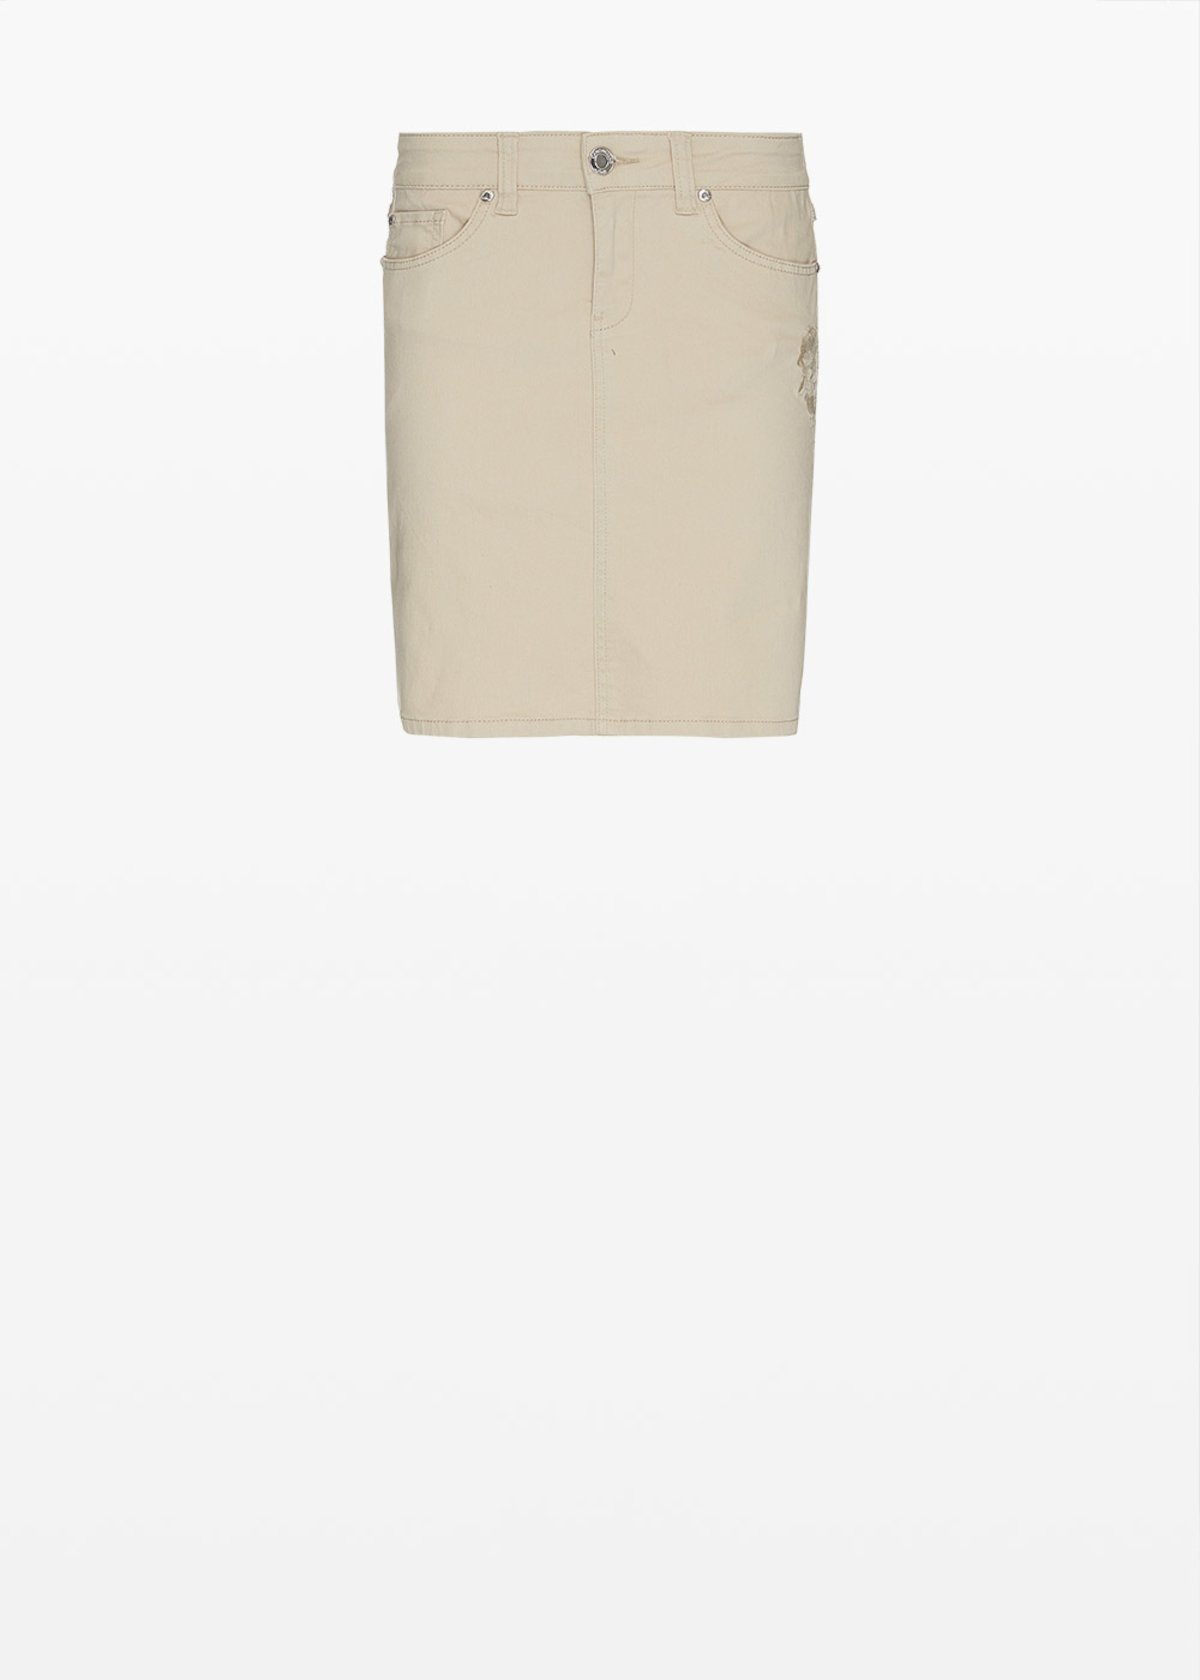 Grayce skirt with embroidery on the pocket - Light Beige - Woman